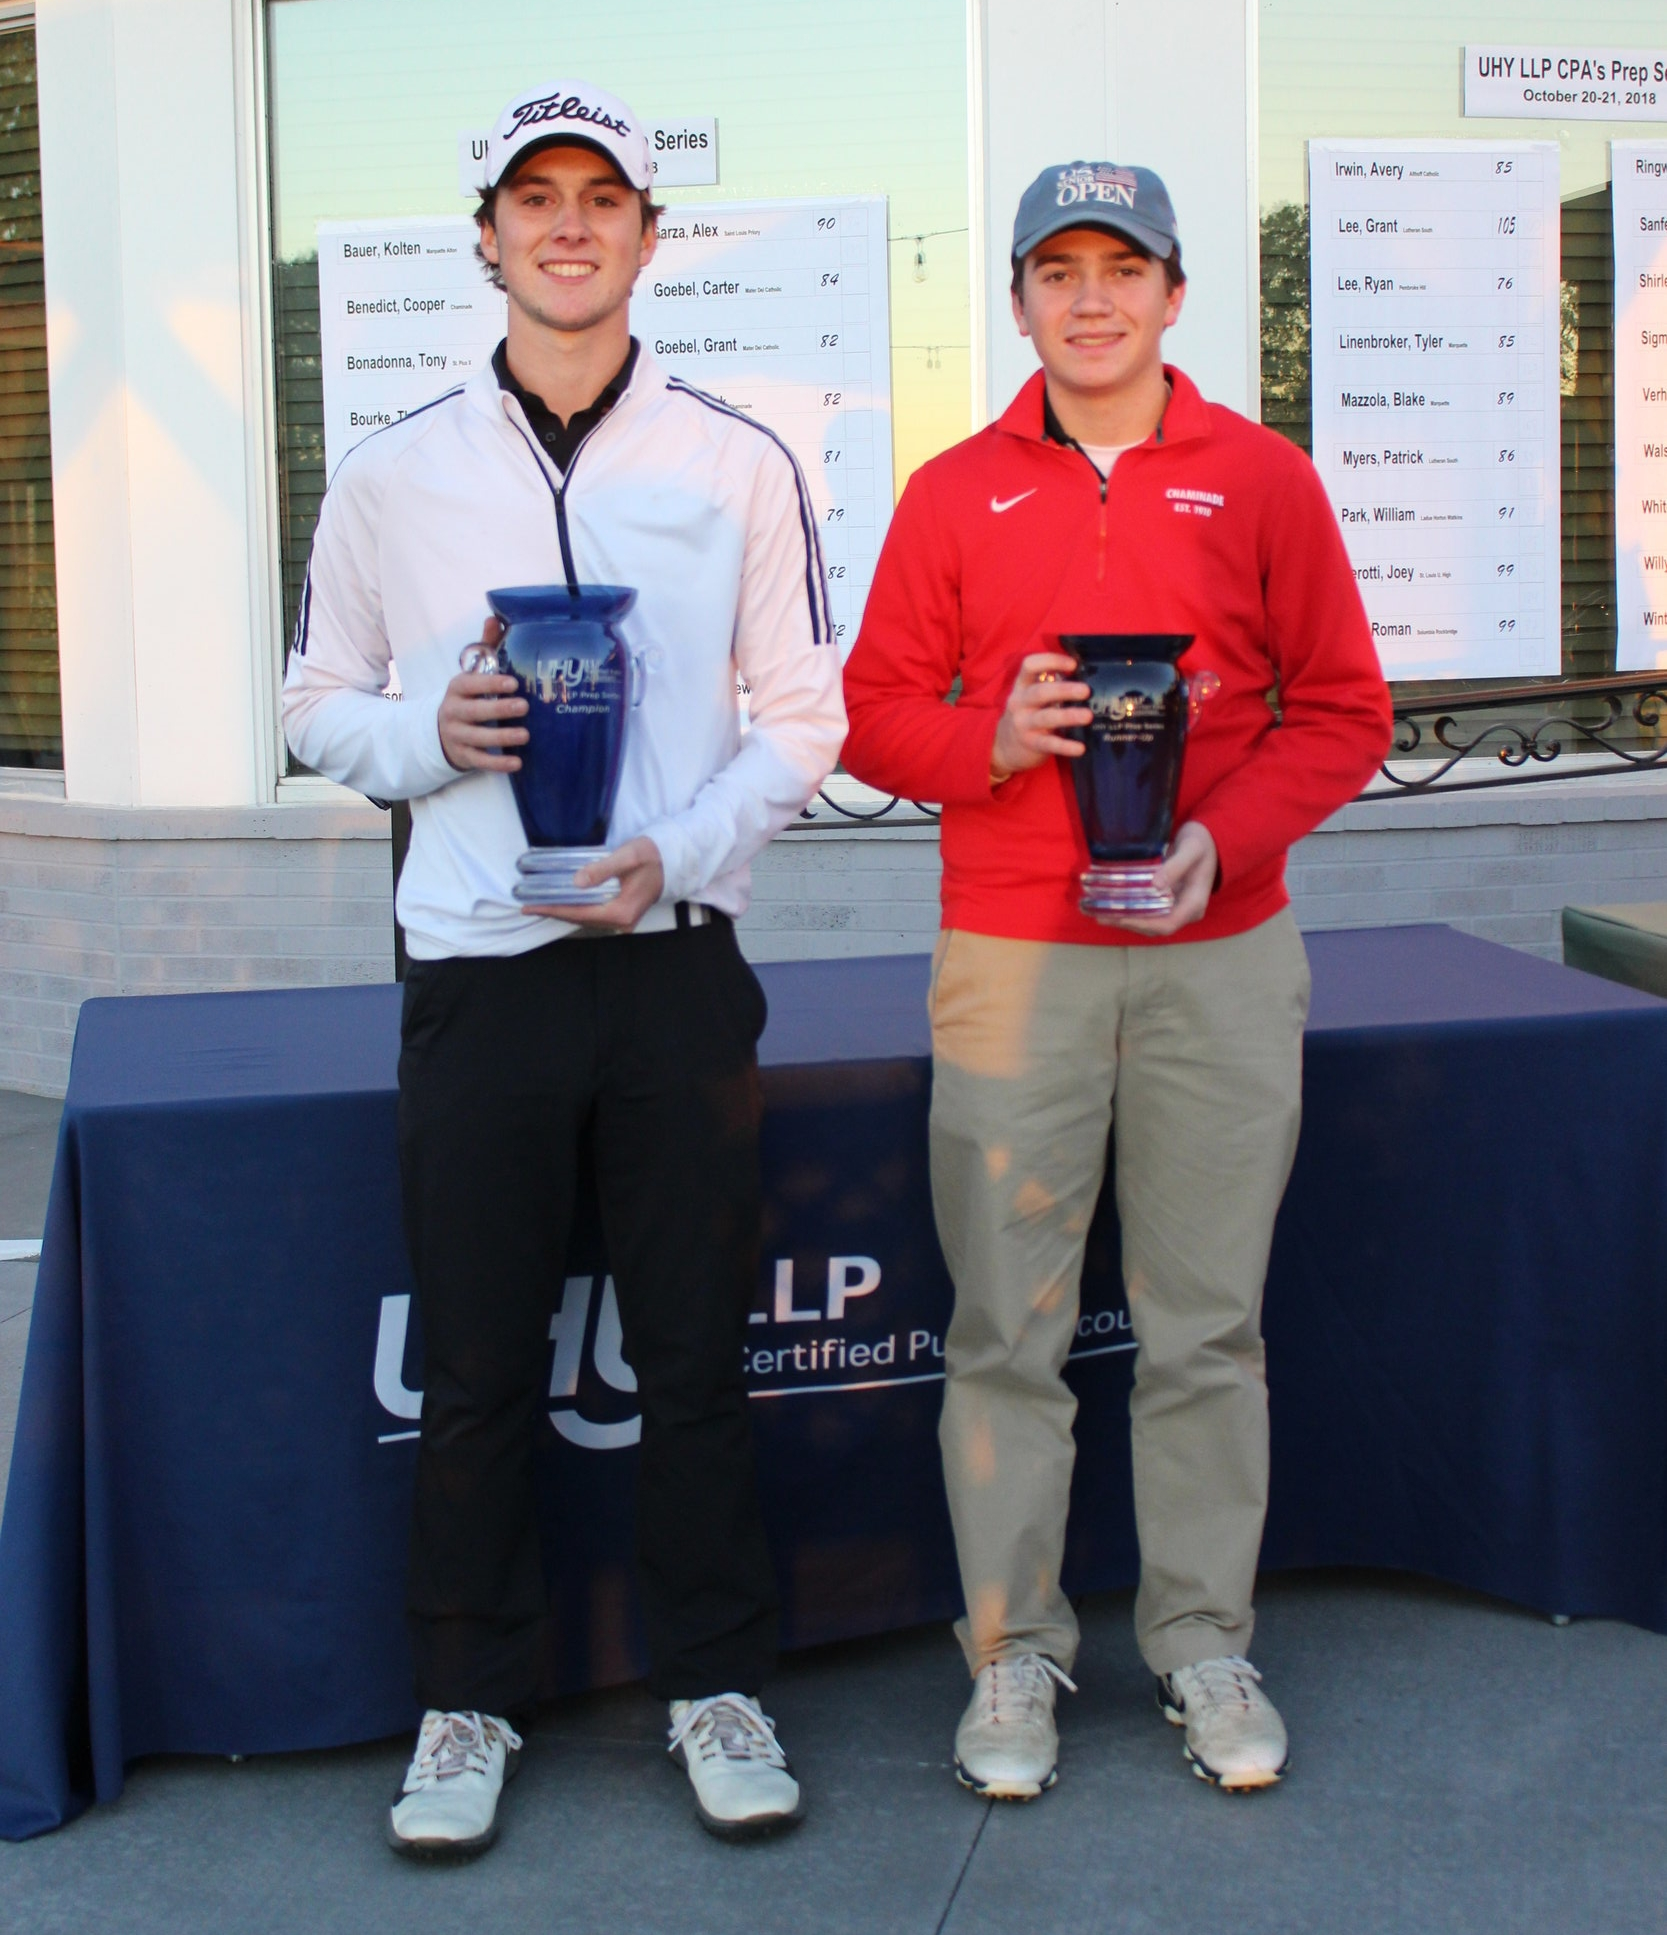 - Chaminade's Josh Heidenry was the Runner-Up, shooting 79-72 for a 7 over par total of 151.